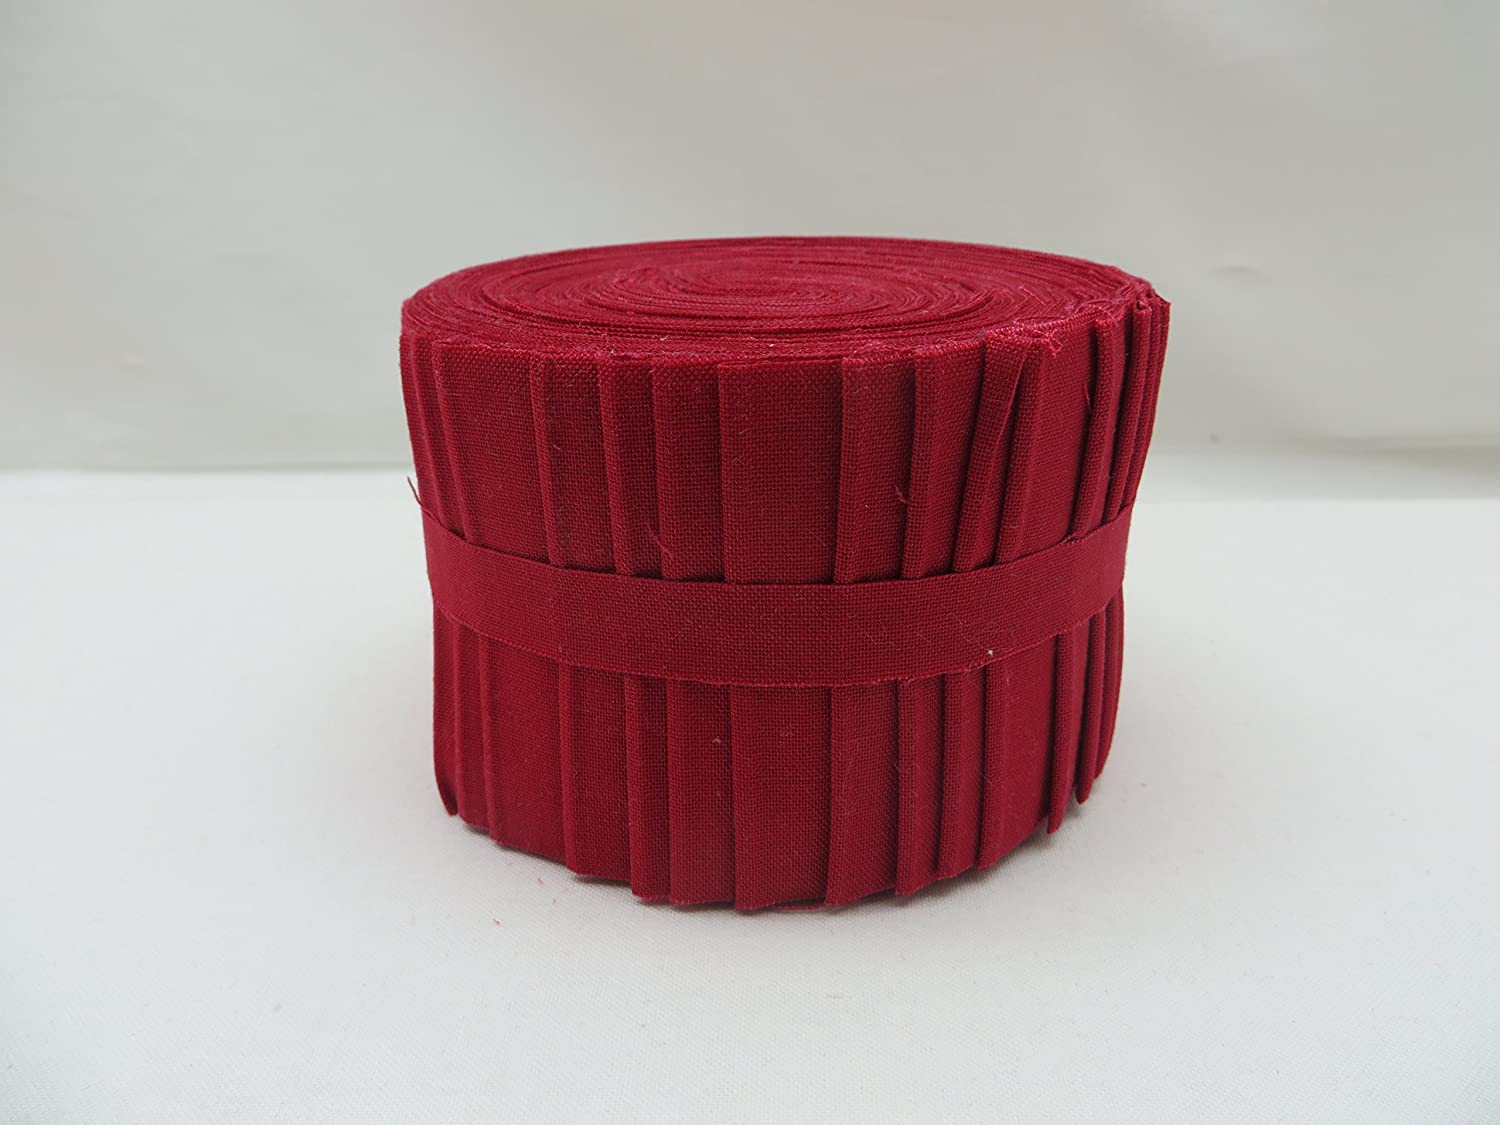 20 Strips Kona Cotton Chinese Red 2.5-inch Pre Cut Quilting Strips Jelly Roll Fabric Robert Kaufman Fabrics